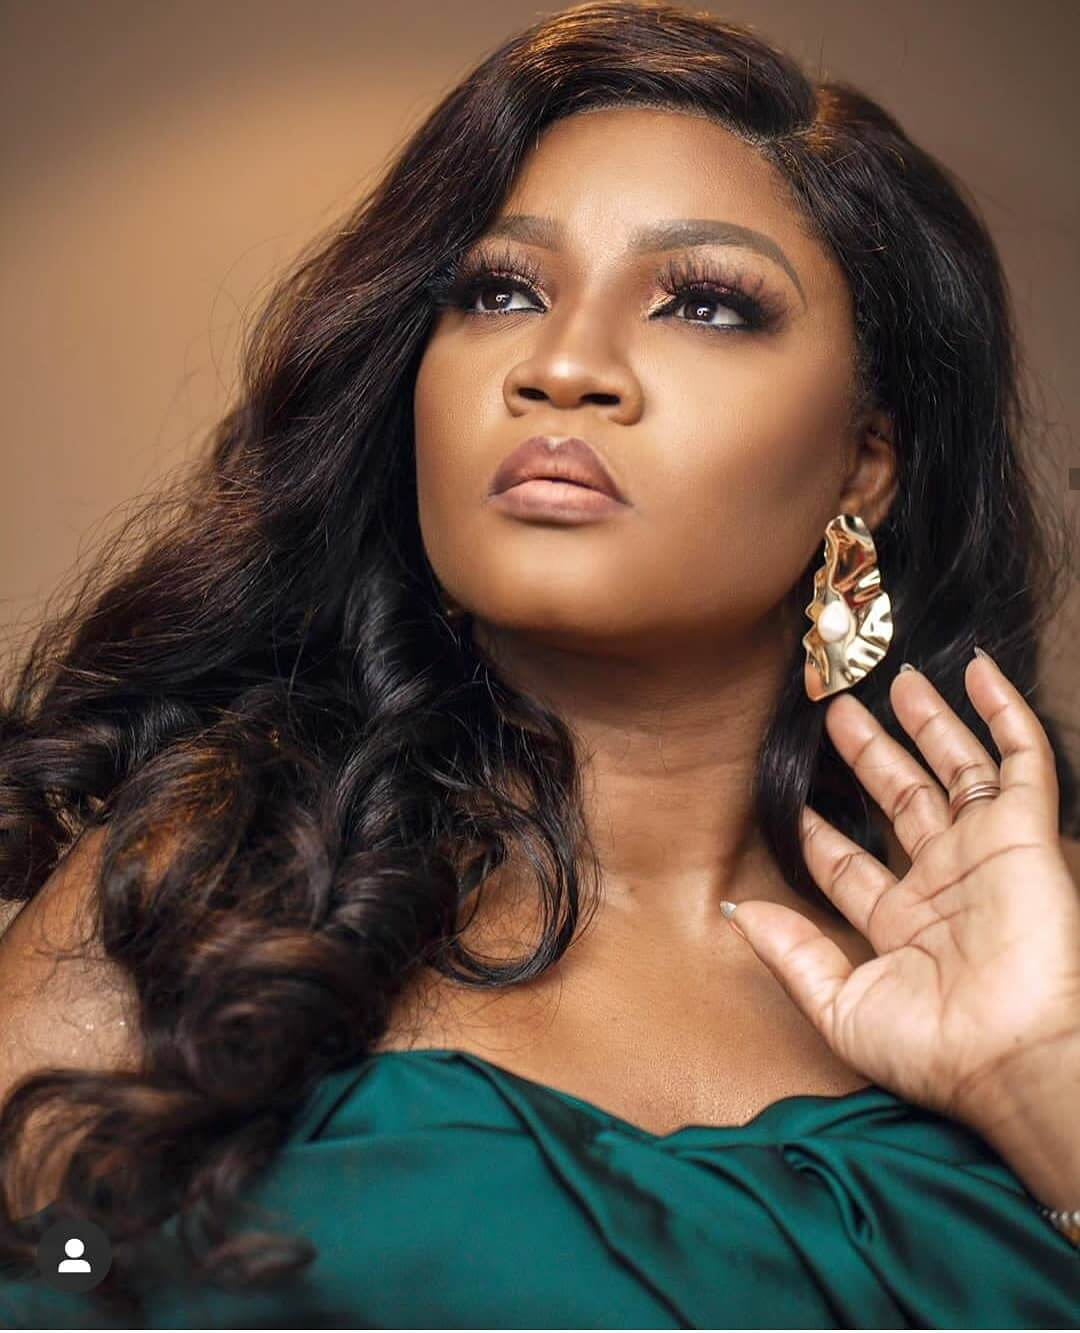 Omotola Jalade-Ekeinde says she doesn't know how the news makes her feel